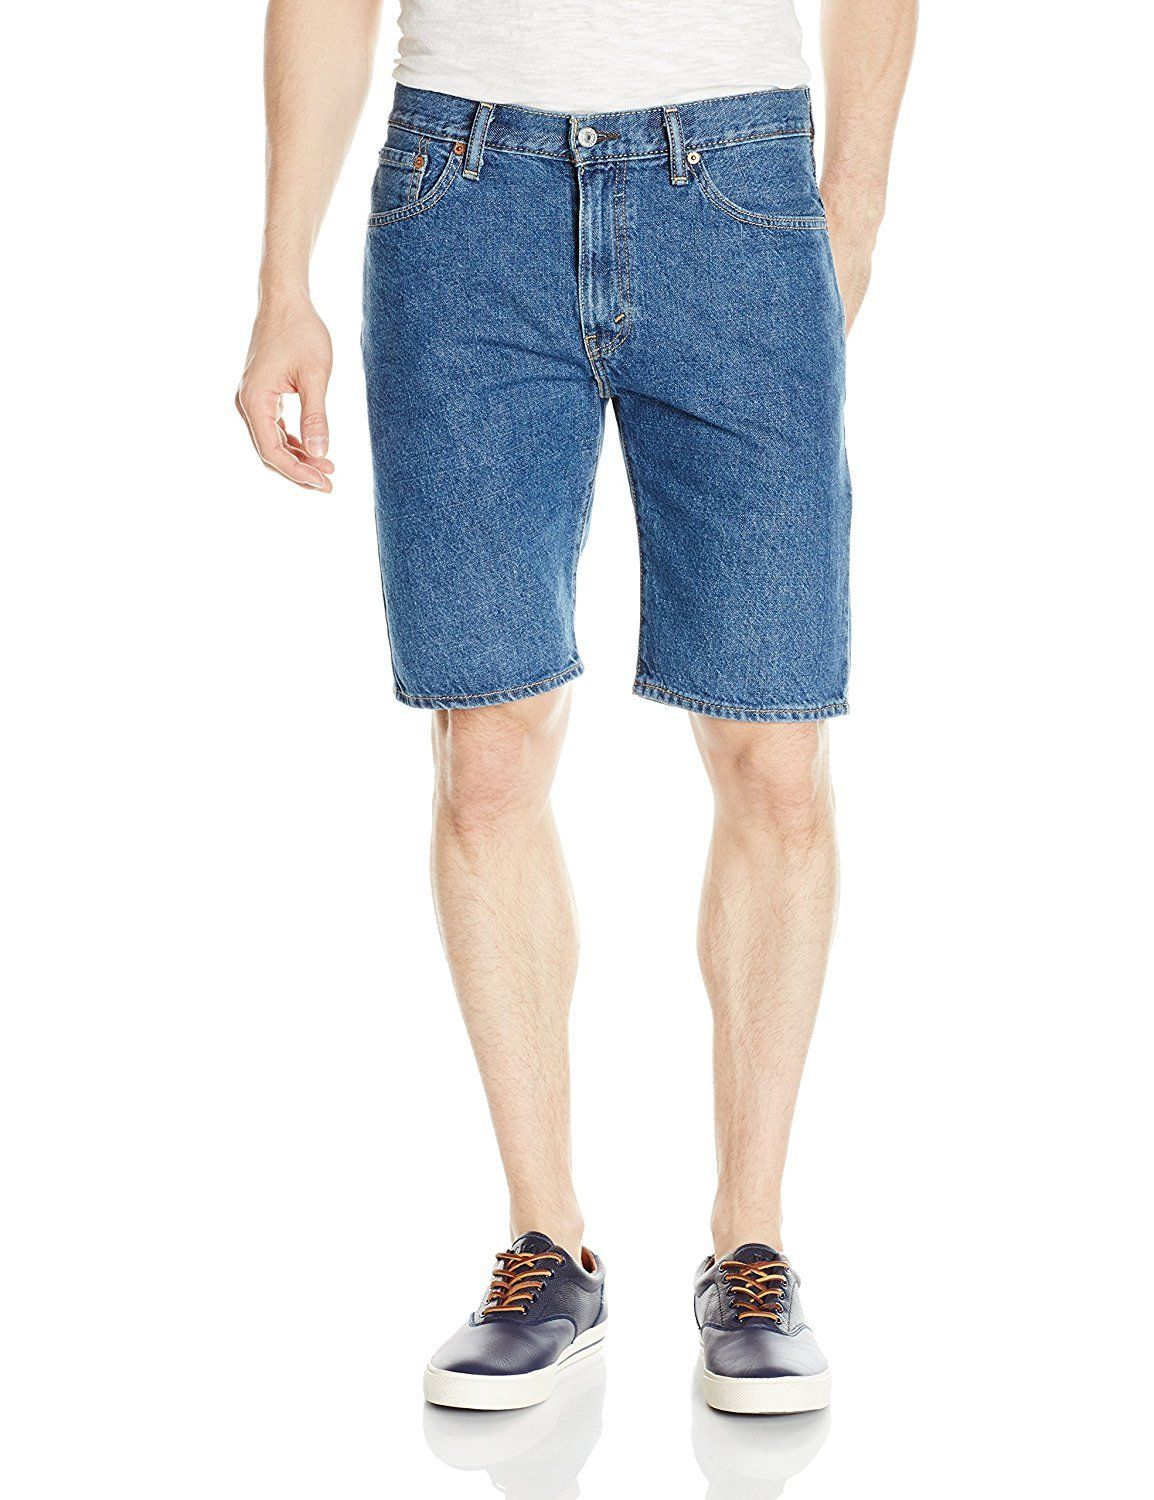 Levi's 505 Men's Cotton Regular Fit Medium Stonewash Denim Shorts 505-2111 sz 38